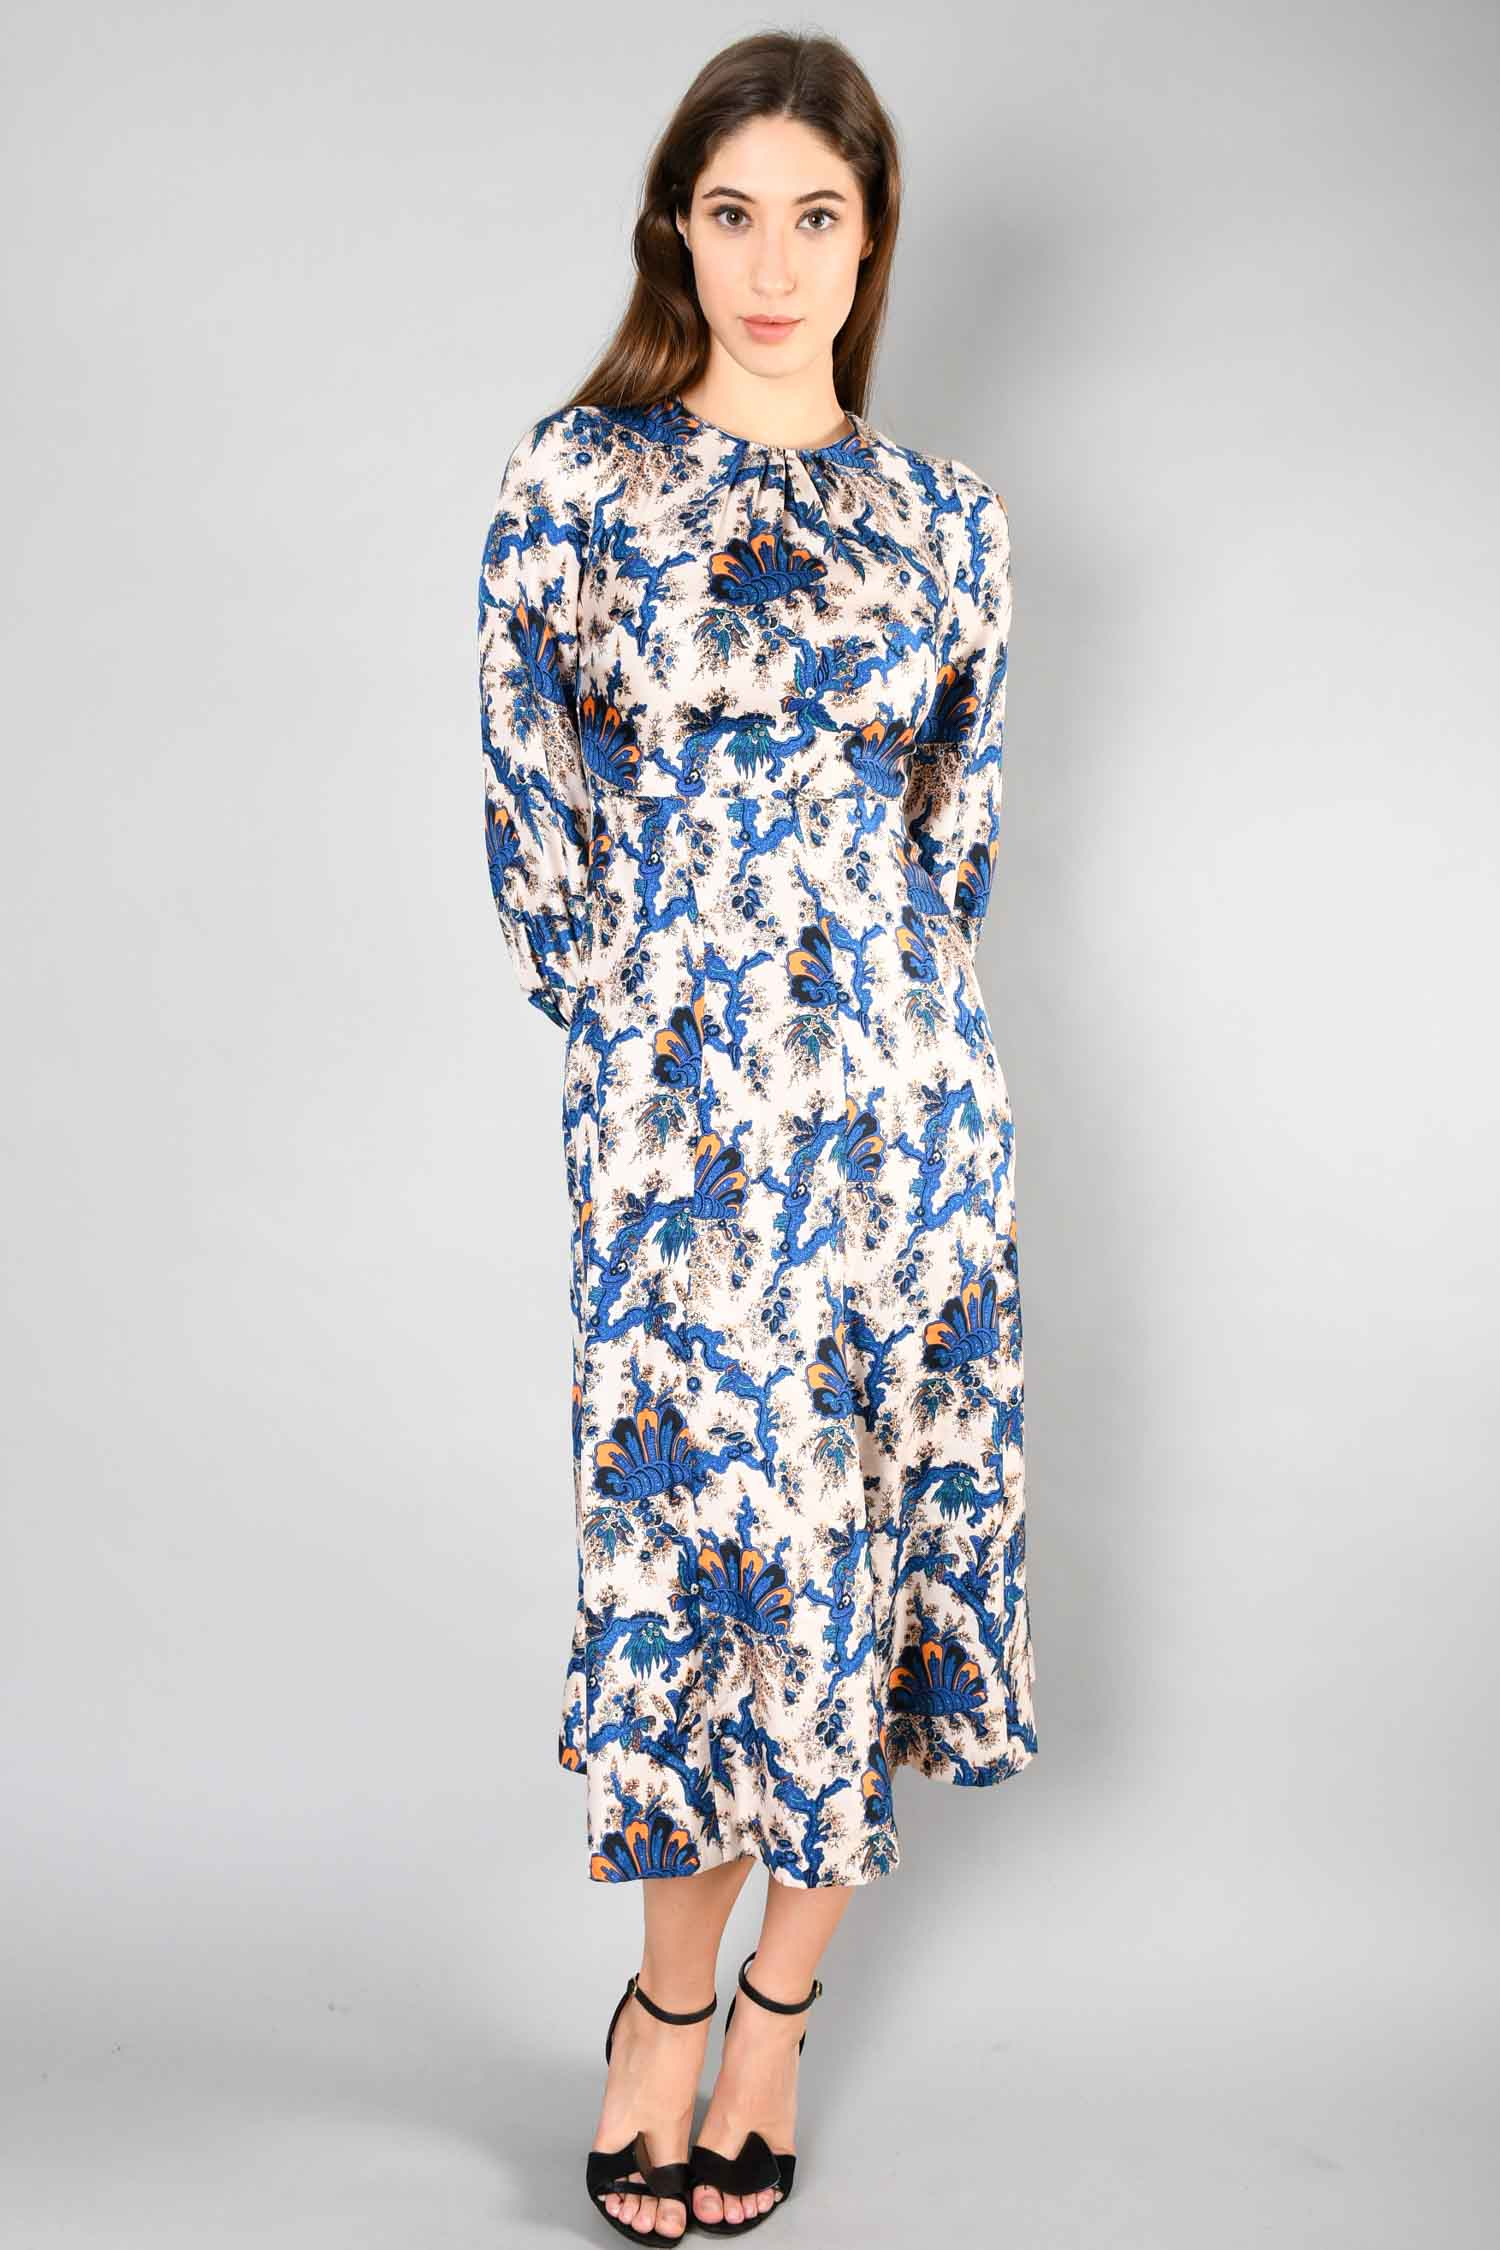 Sandro Cream/Blue Printed L/S Maxi Dress Size 36